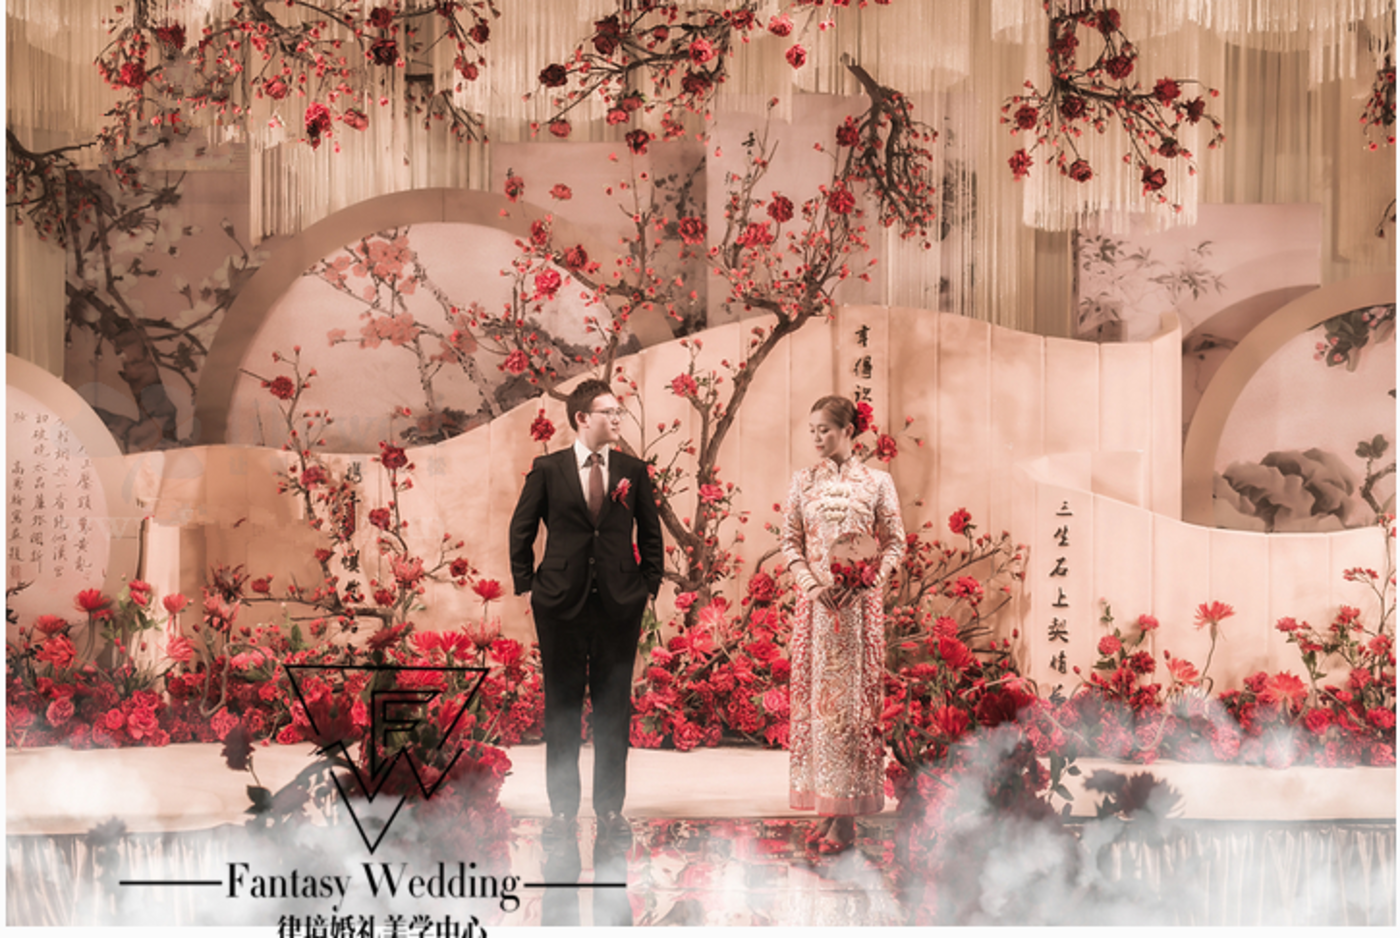 「Fantasy Wedding」 景秀未央22